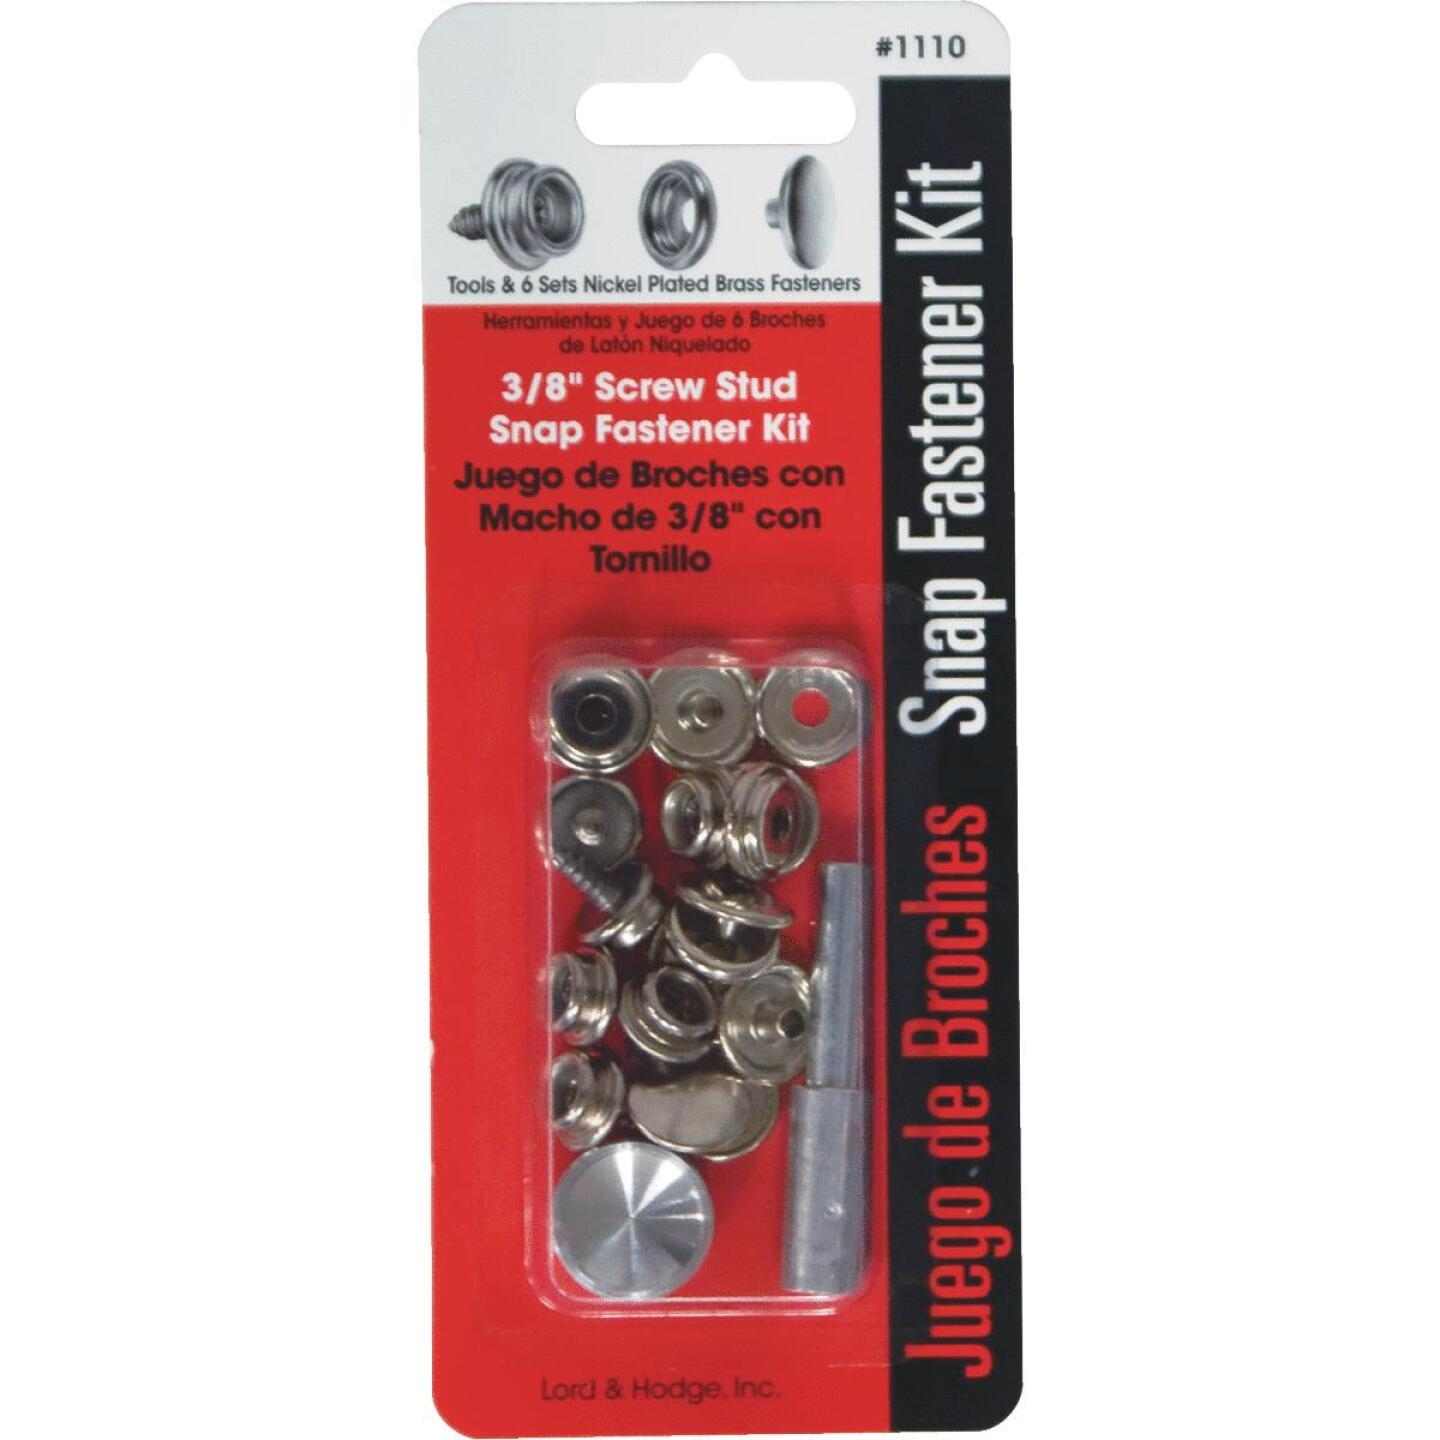 Lord & Hodge Metal Snap Fastener Kit Canvas to Hard Surface (6 Ct.) Image 1